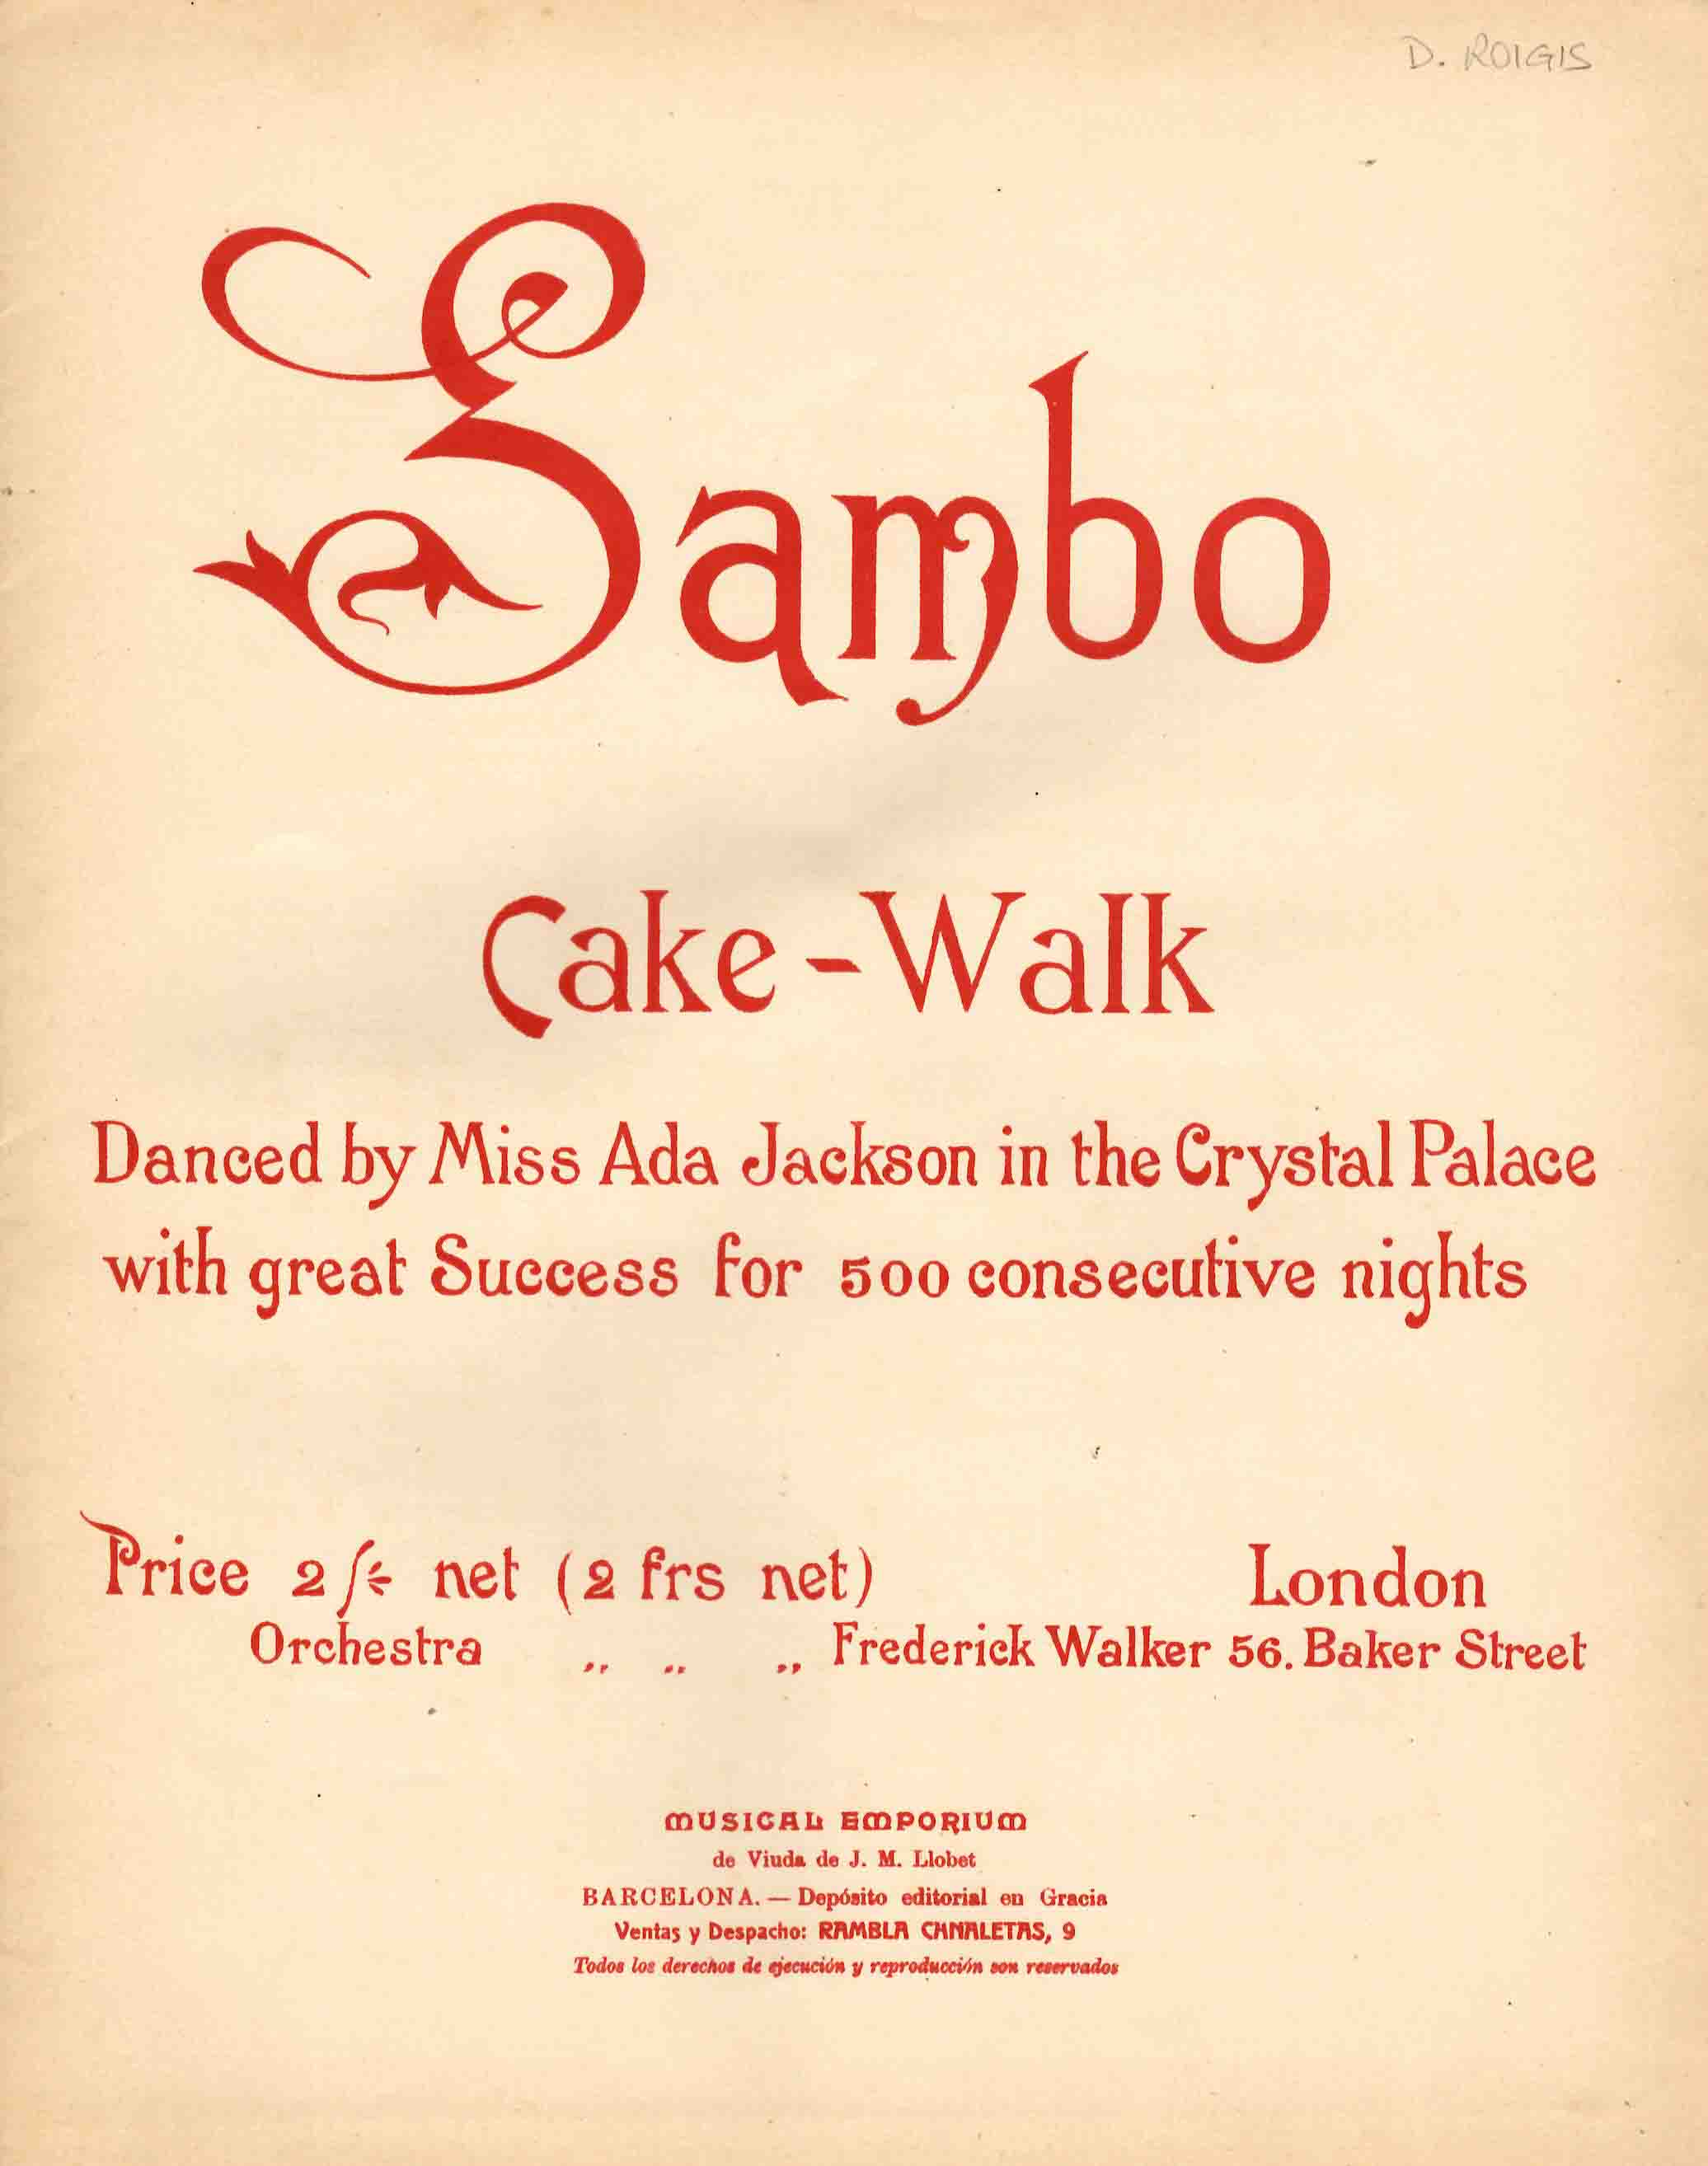 Sambo. Cake-Walk. Danced by Miss Ada Jackson in the Crystal Palace